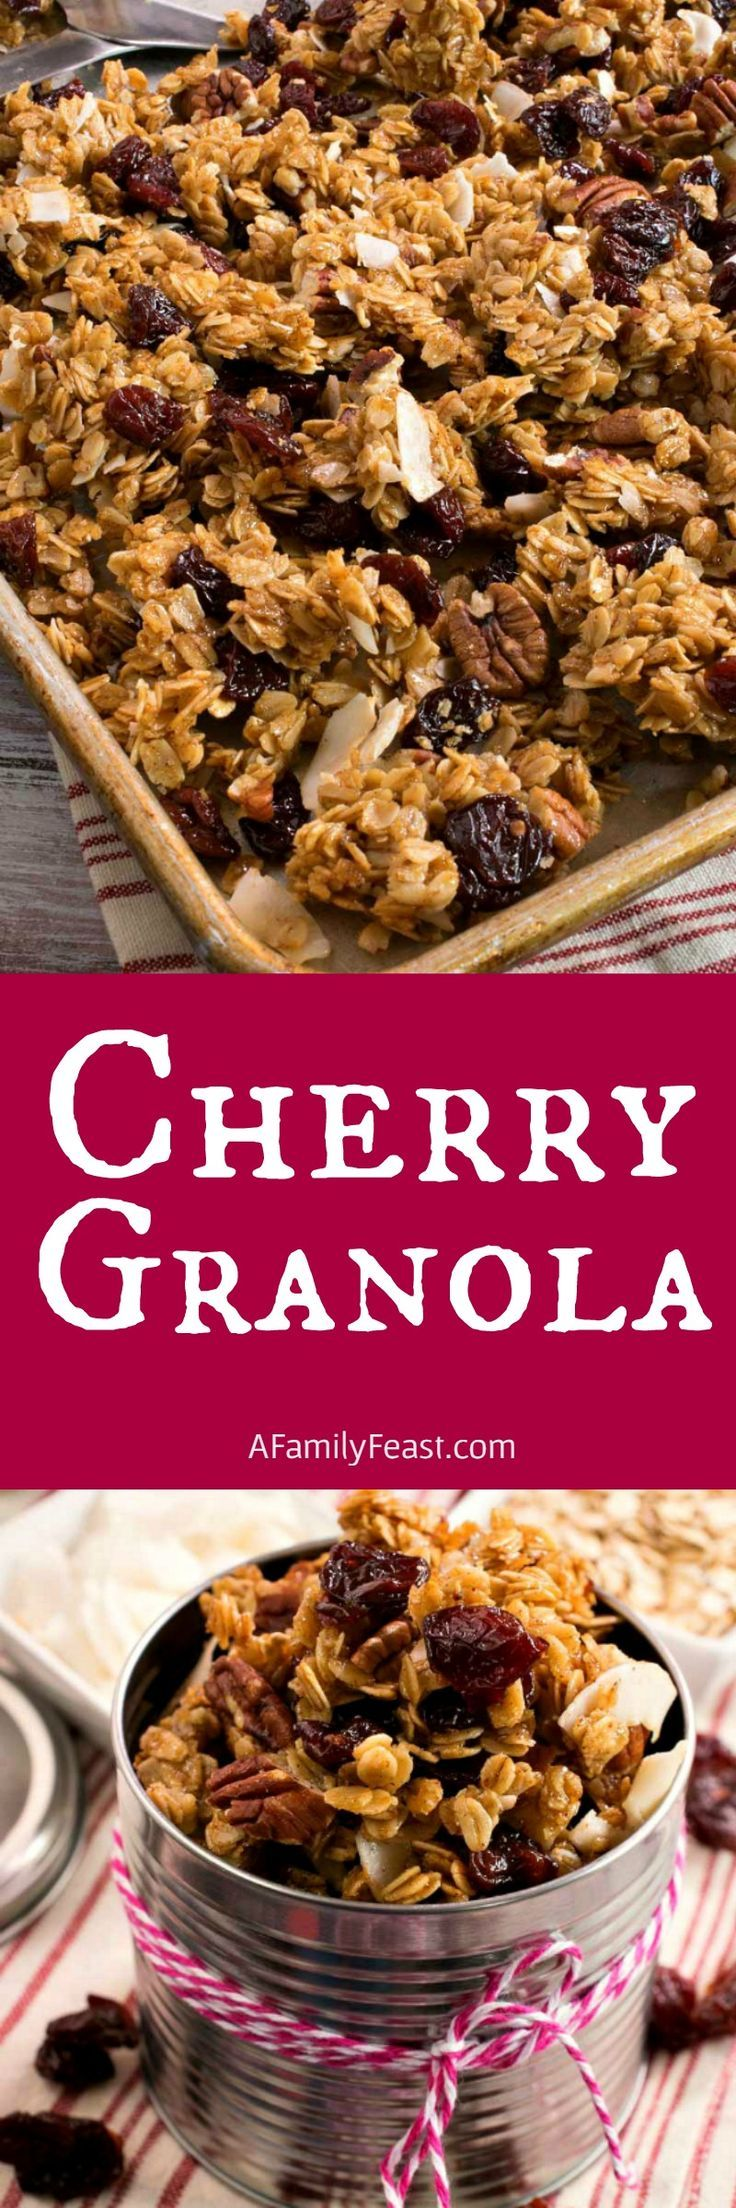 Cherry Granola - So easy to make at home. Loaded with oats, dried cherries, coconut, nuts and more!